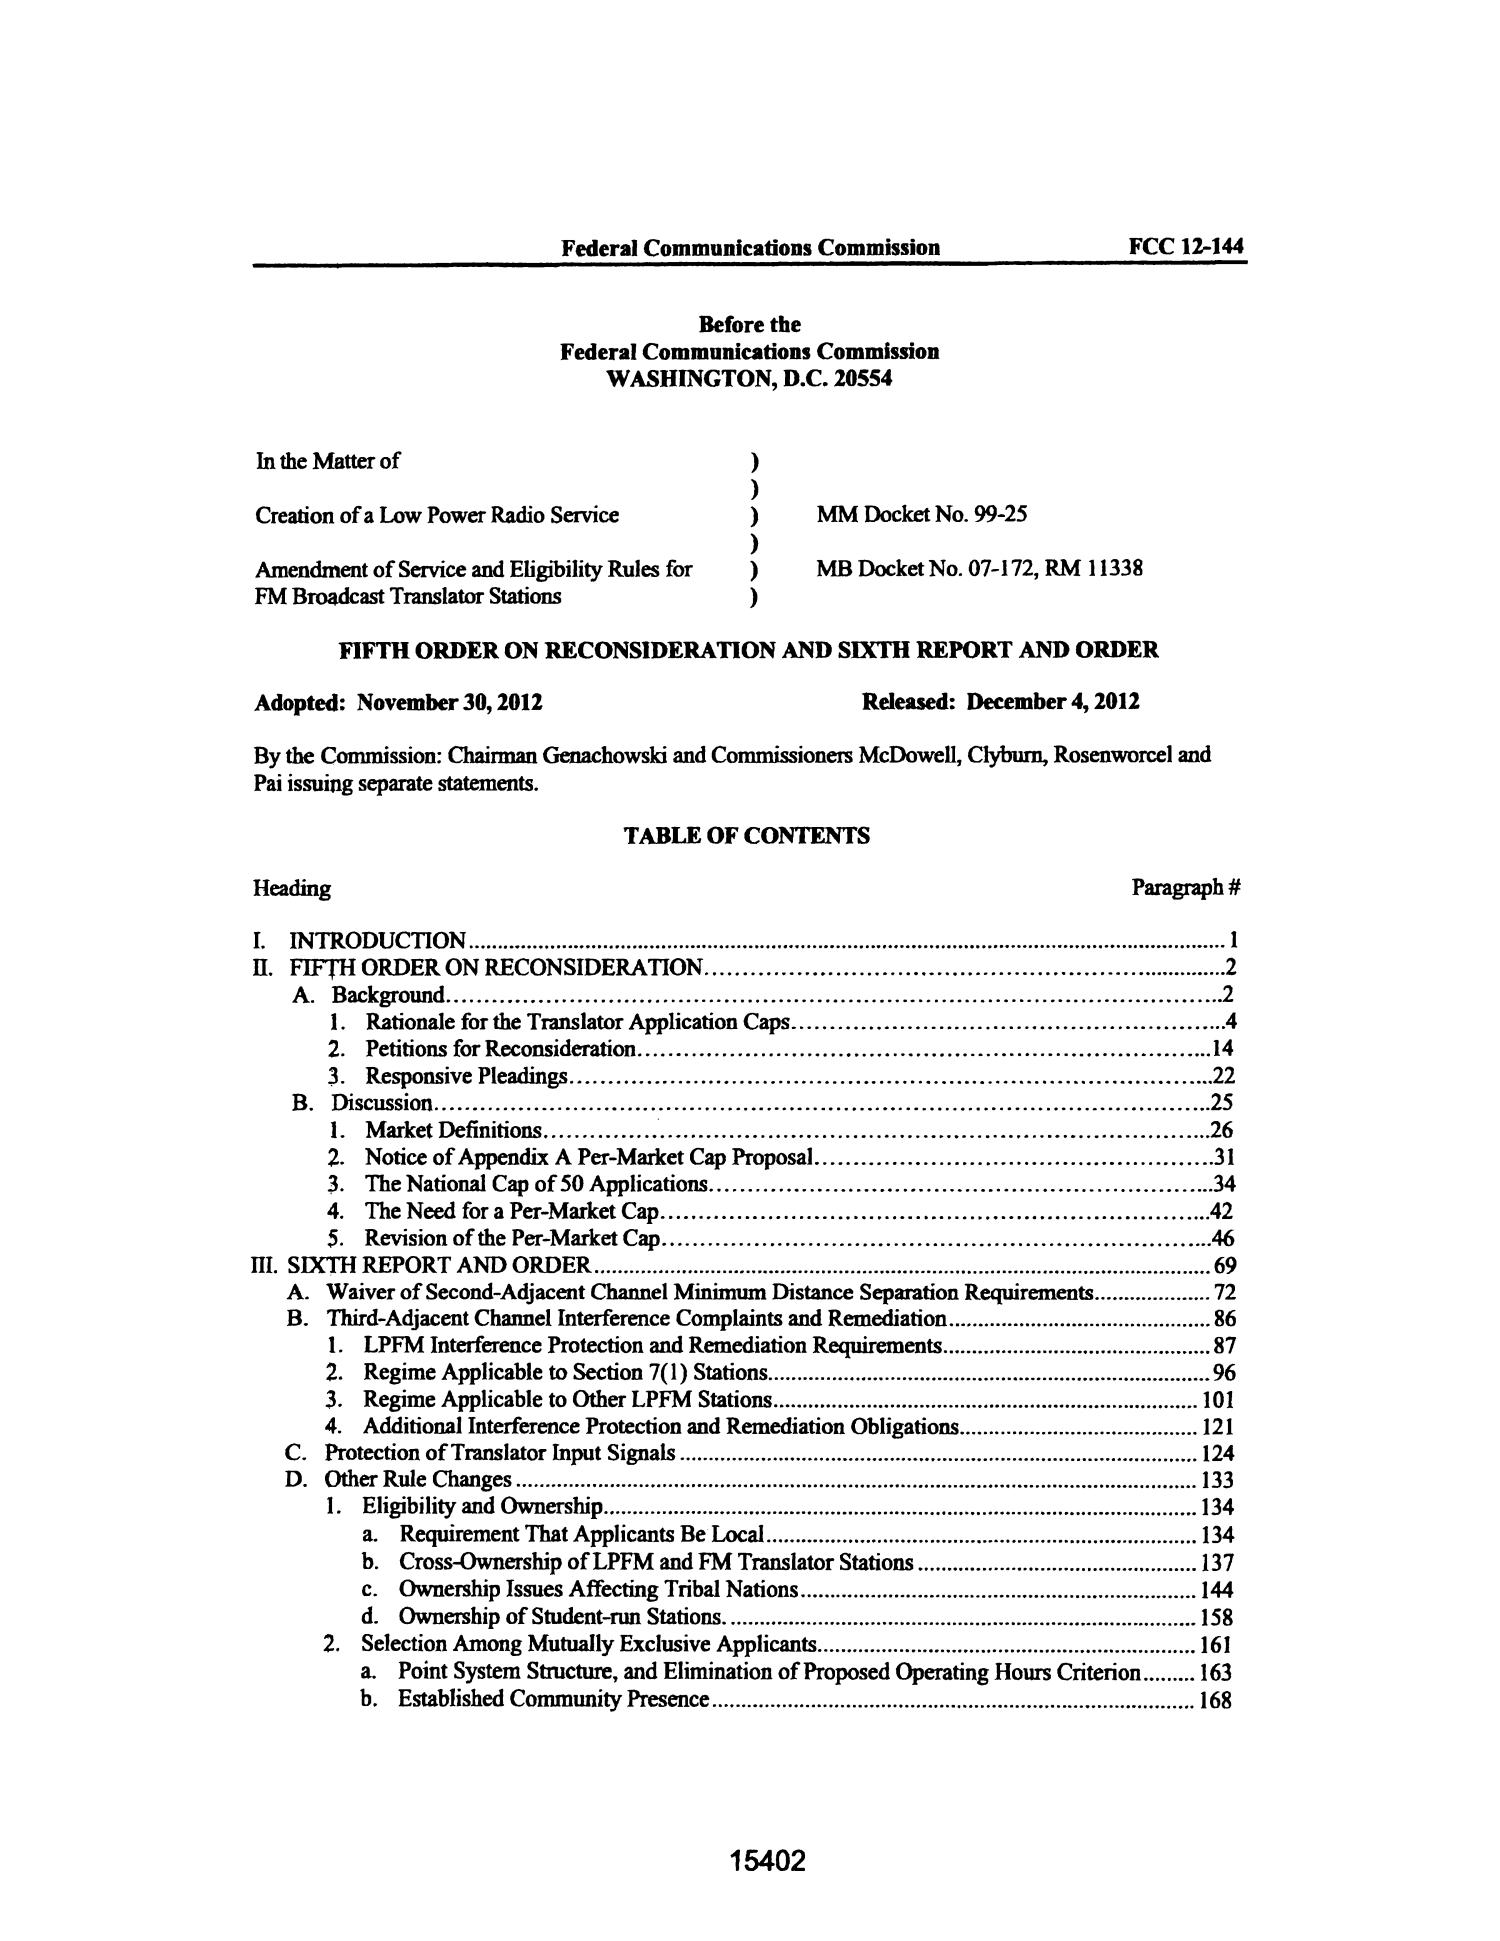 FCC Record, Volume 27, No. 18, Pages 14770 to 15765, November 26 - December 13, 2012                                                                                                      15402